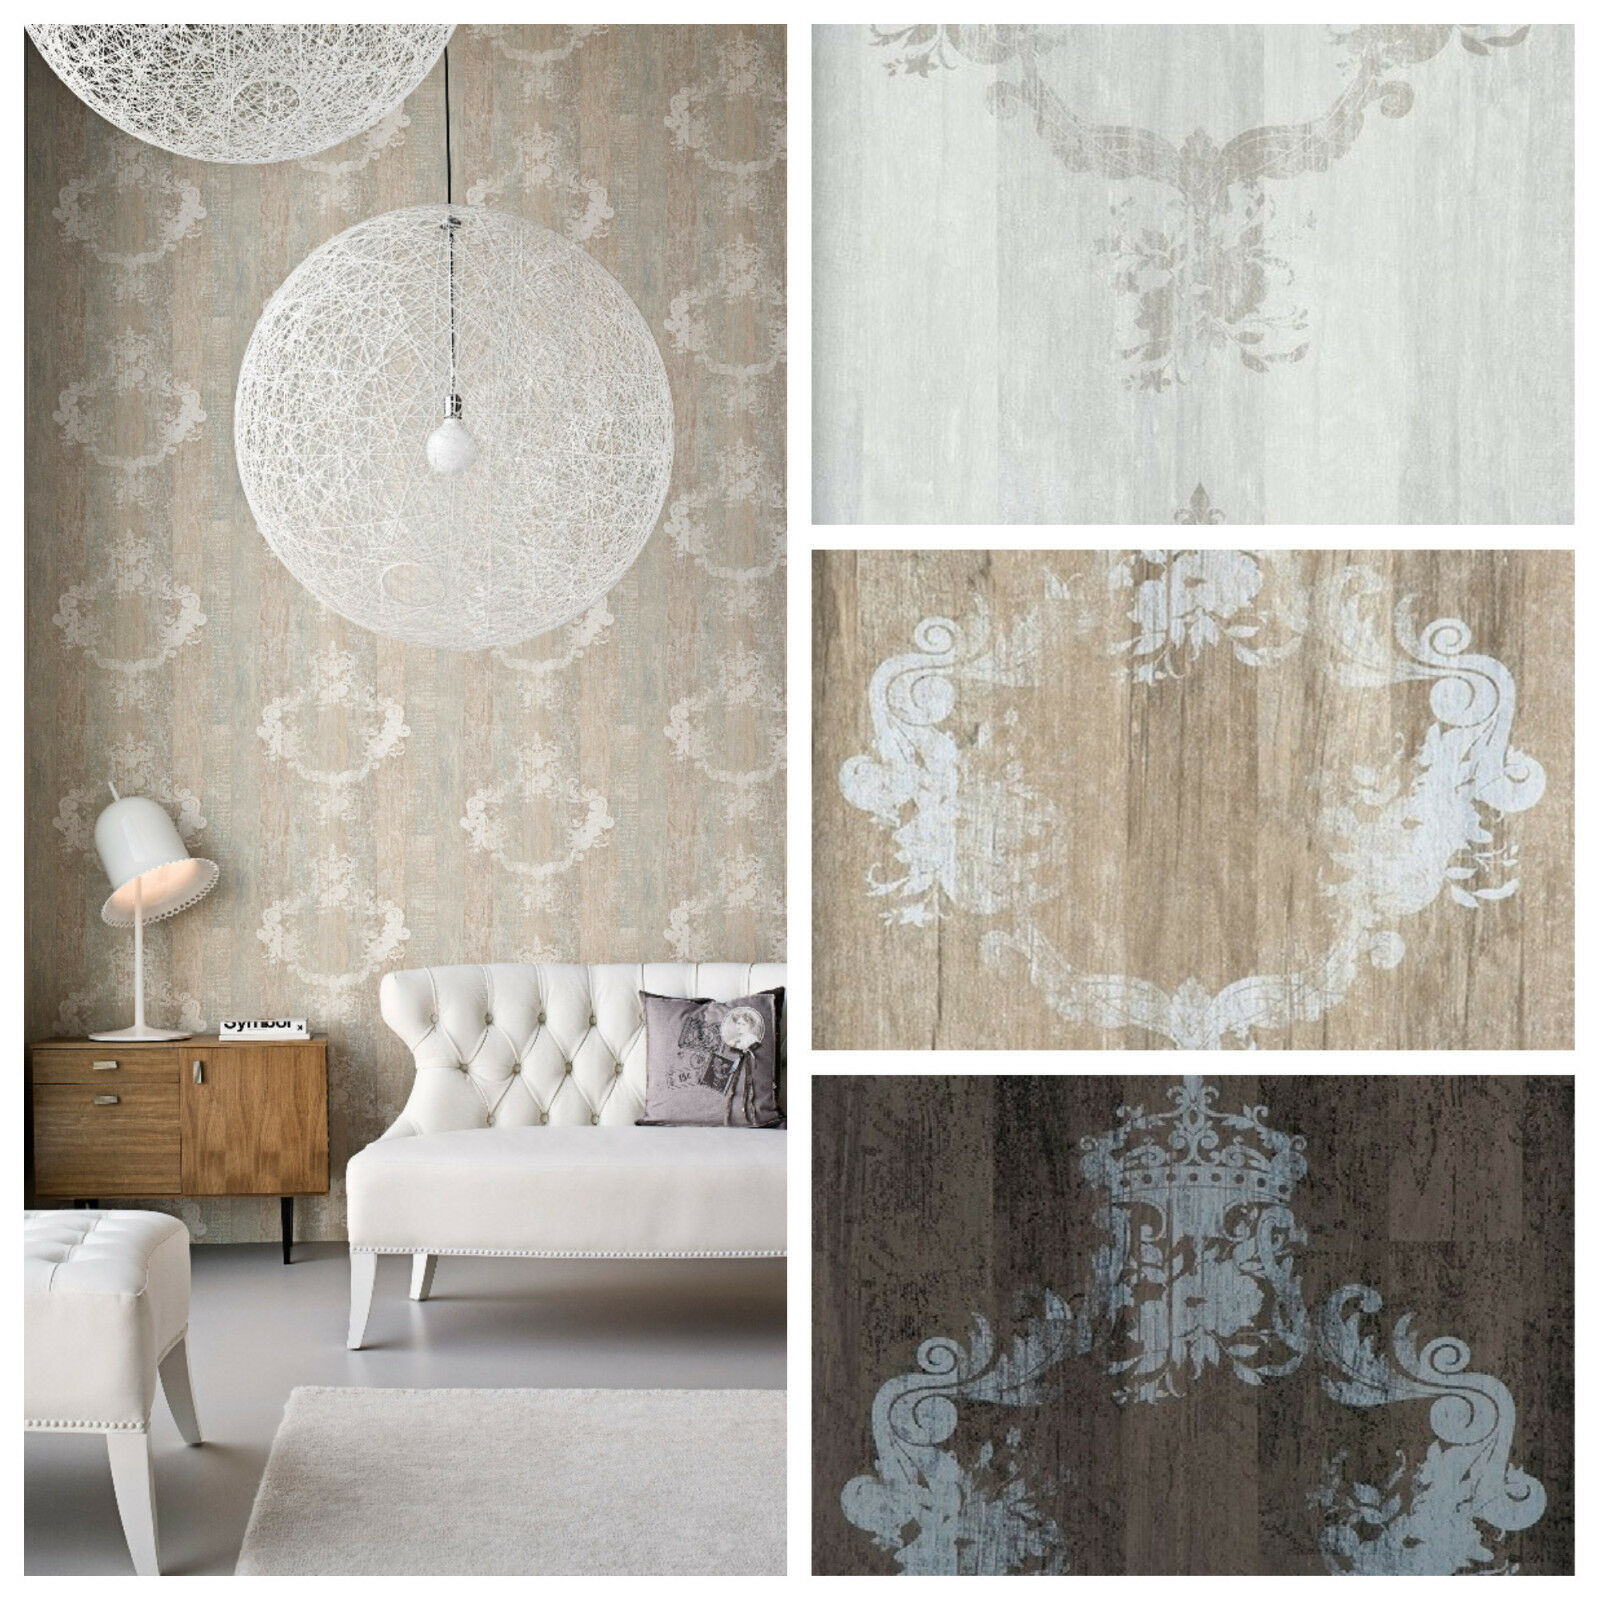 Grau Holz Vlies Tapete Antik Holz Muster Ornament Barock Braun Grau Beige Elements